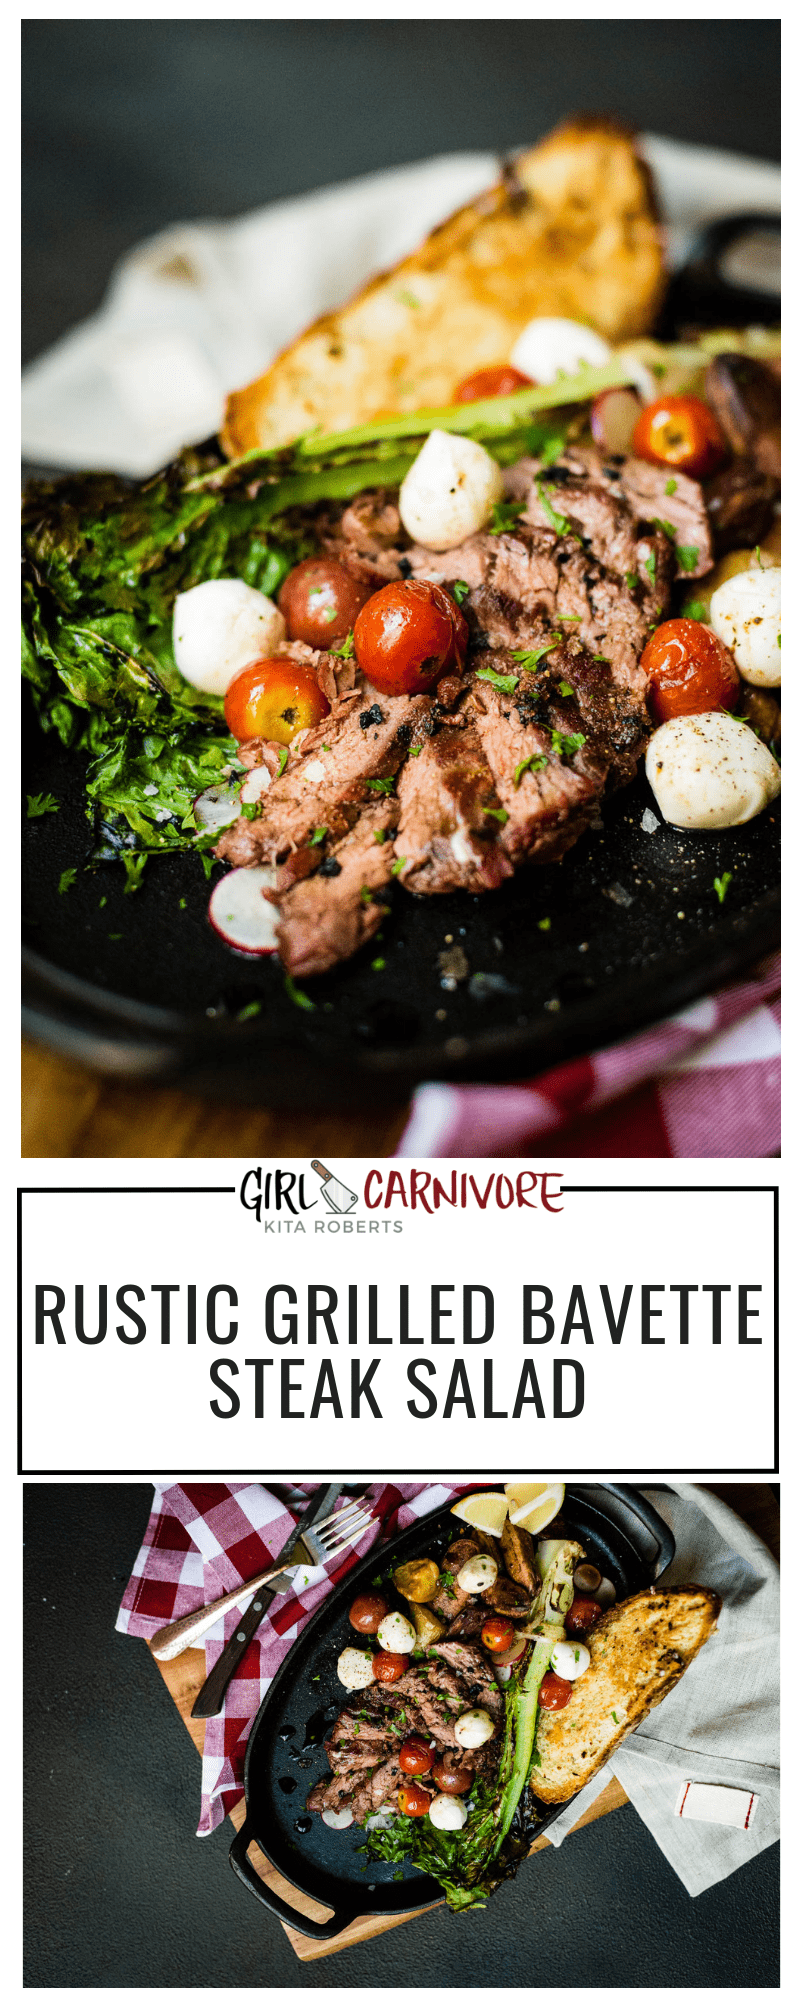 Perfect for a quick night when you don't want to forfeit flavor for healthy. This Rustic Grilled Bavette Steak Salad recipe is a stunner and one for your little black book of recipes.